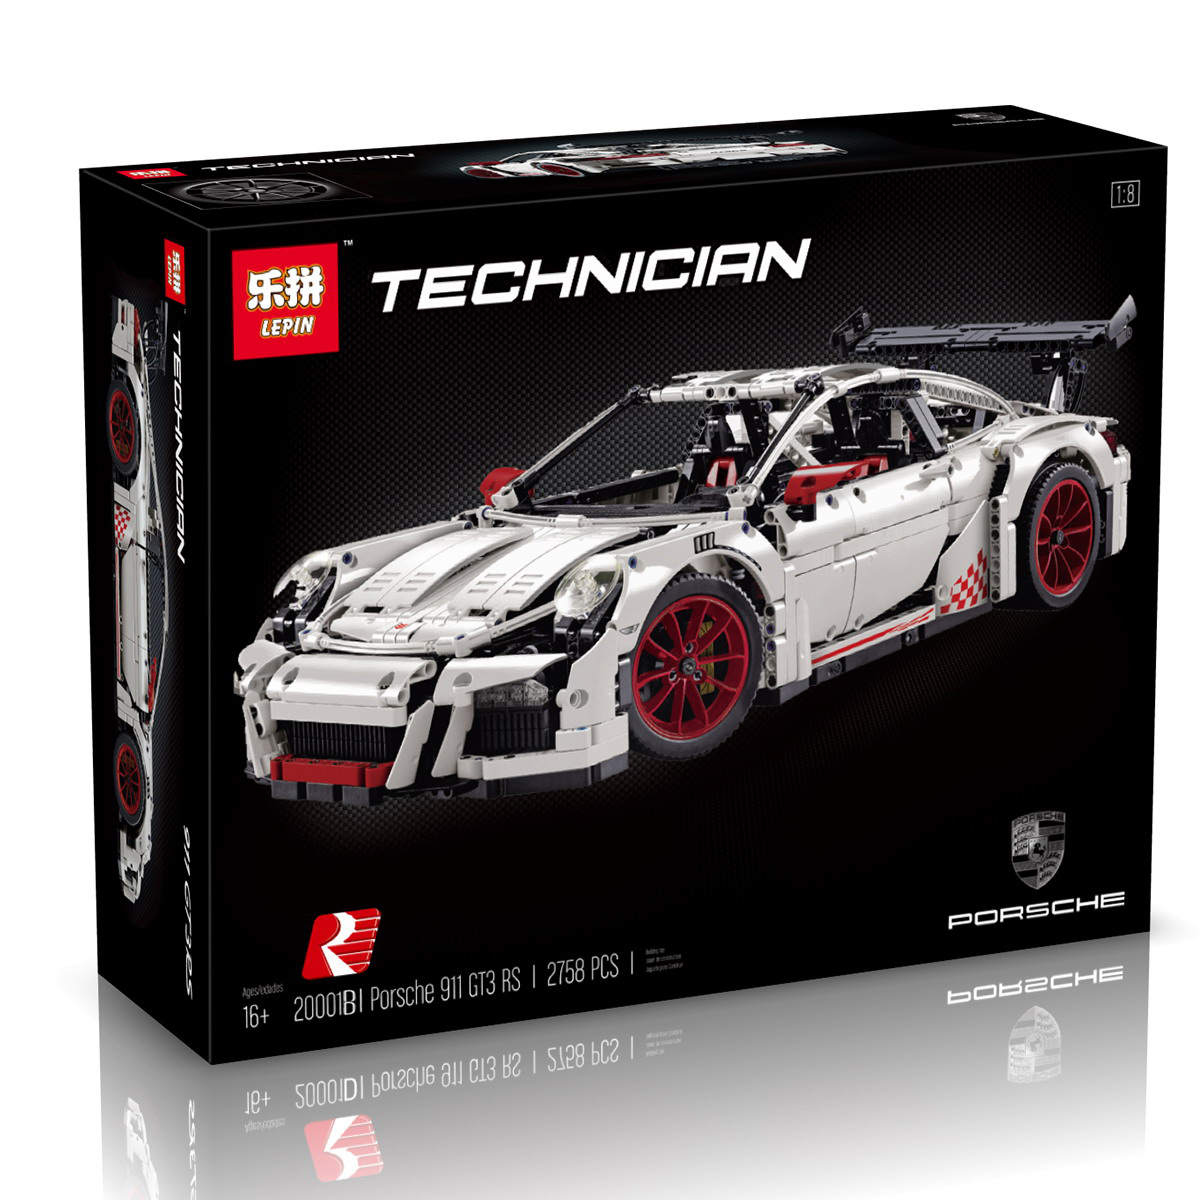 2758+ PCS Building Bricks, LP 20001B Building Blocks Technic 42056 Porsche 911 GT3 RS.